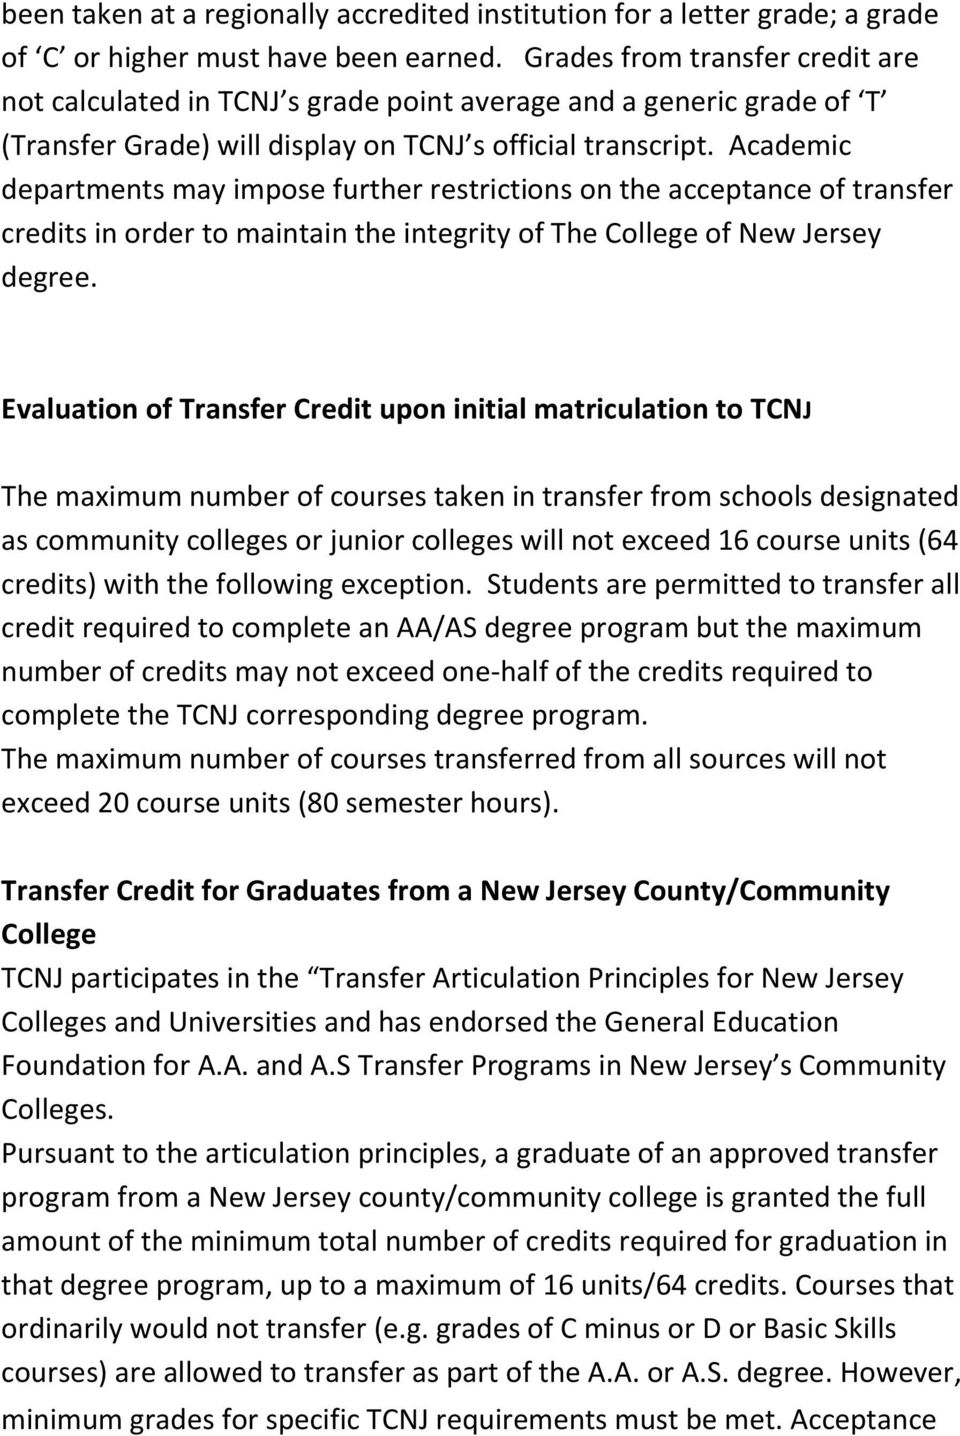 Academic departments may impose further restrictions on the acceptance of transfer credits in order to maintain the integrity of The College of New Jersey degree.